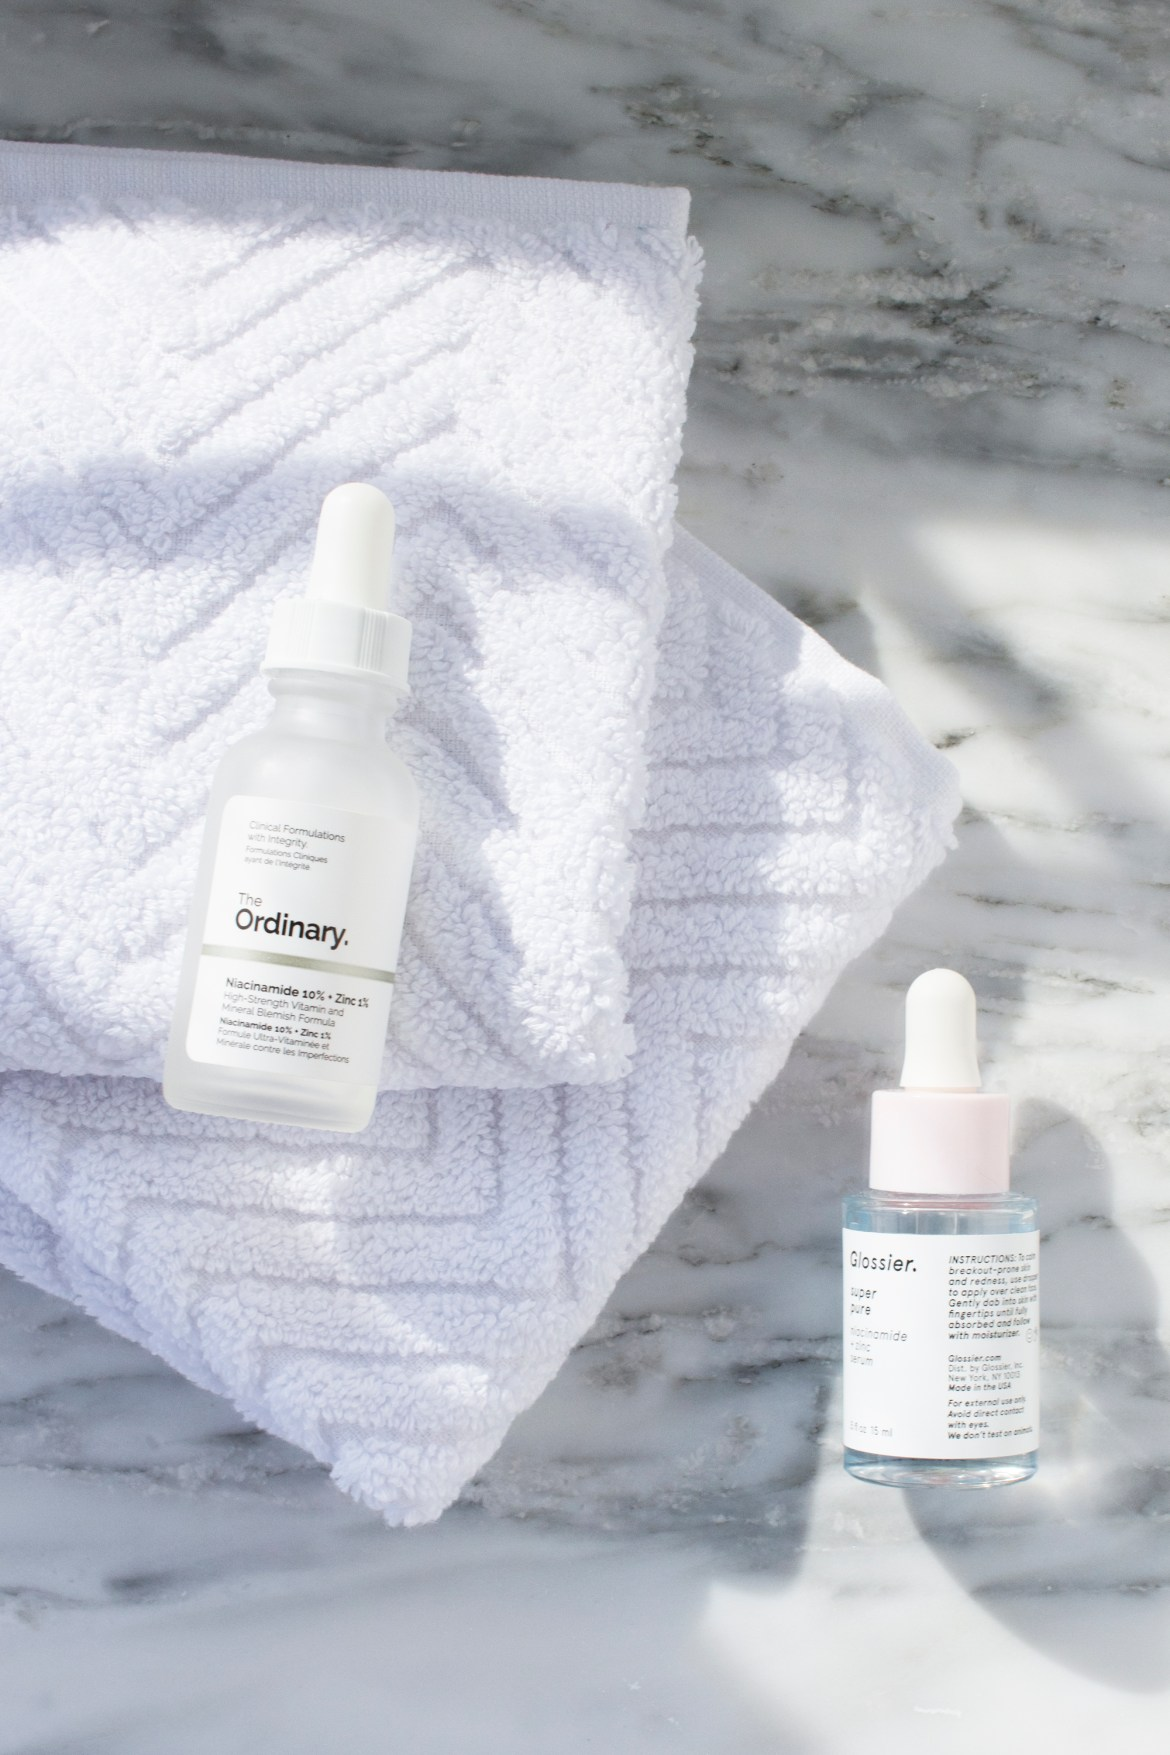 Glossier Super Pure Vs The Ordinary Niacinamide Zinc Serum Caked To The Nines